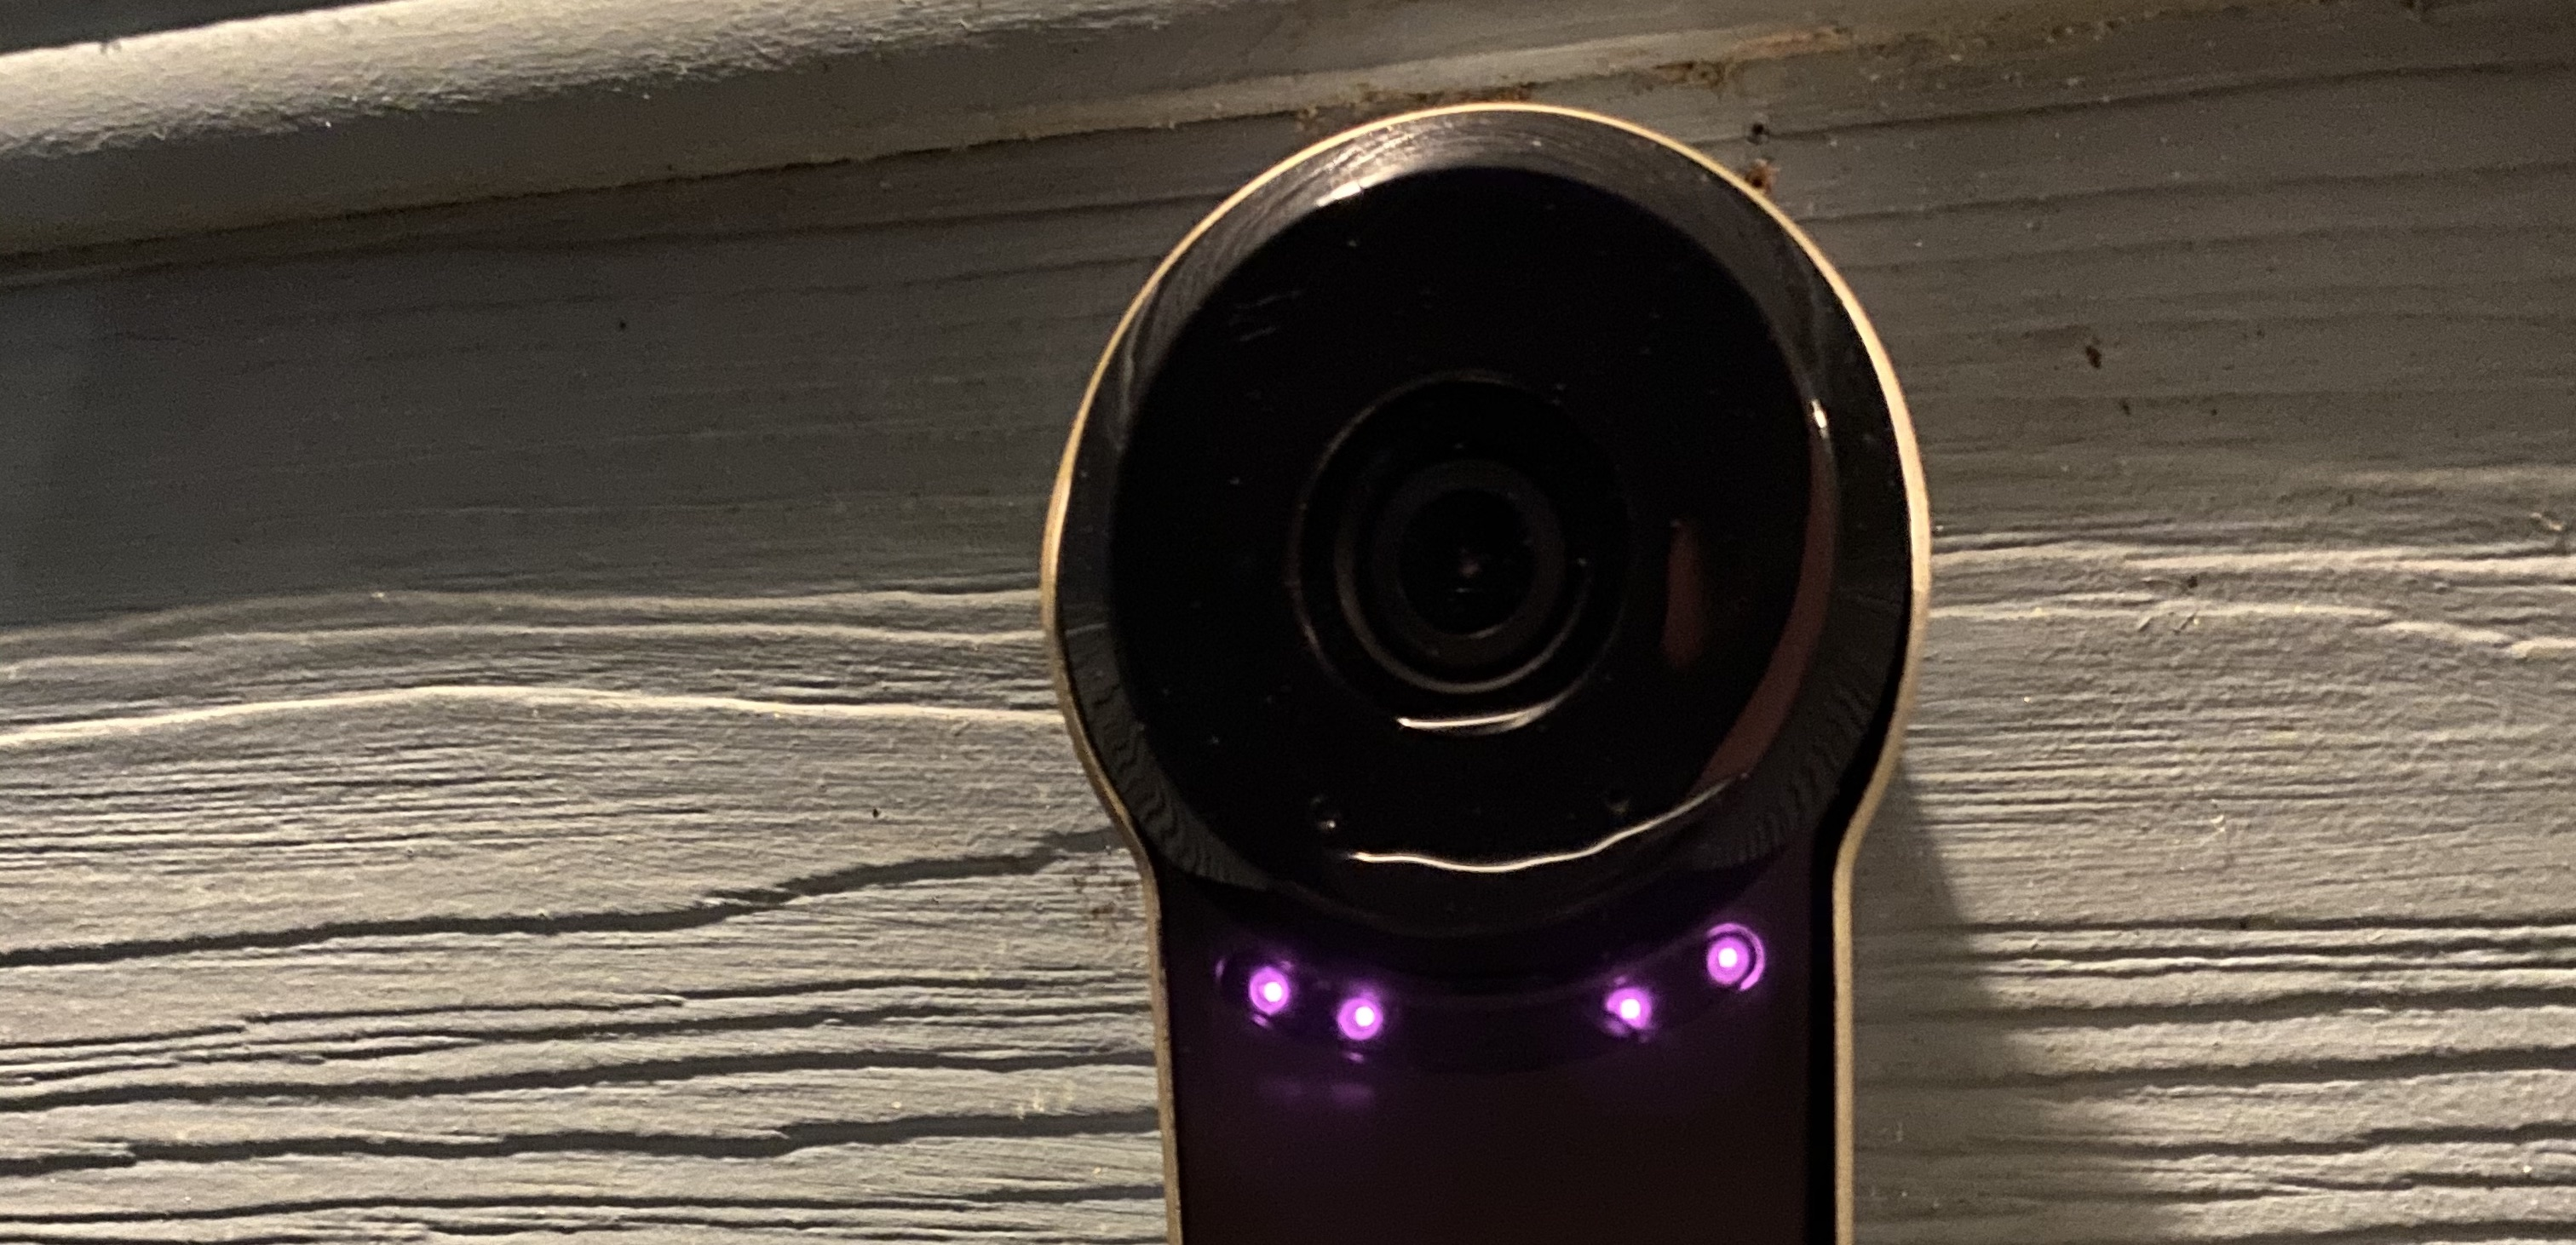 [New availability and missing features] Yobi B3 beats the smart home industry to creating an affordable HomeKit doorbell